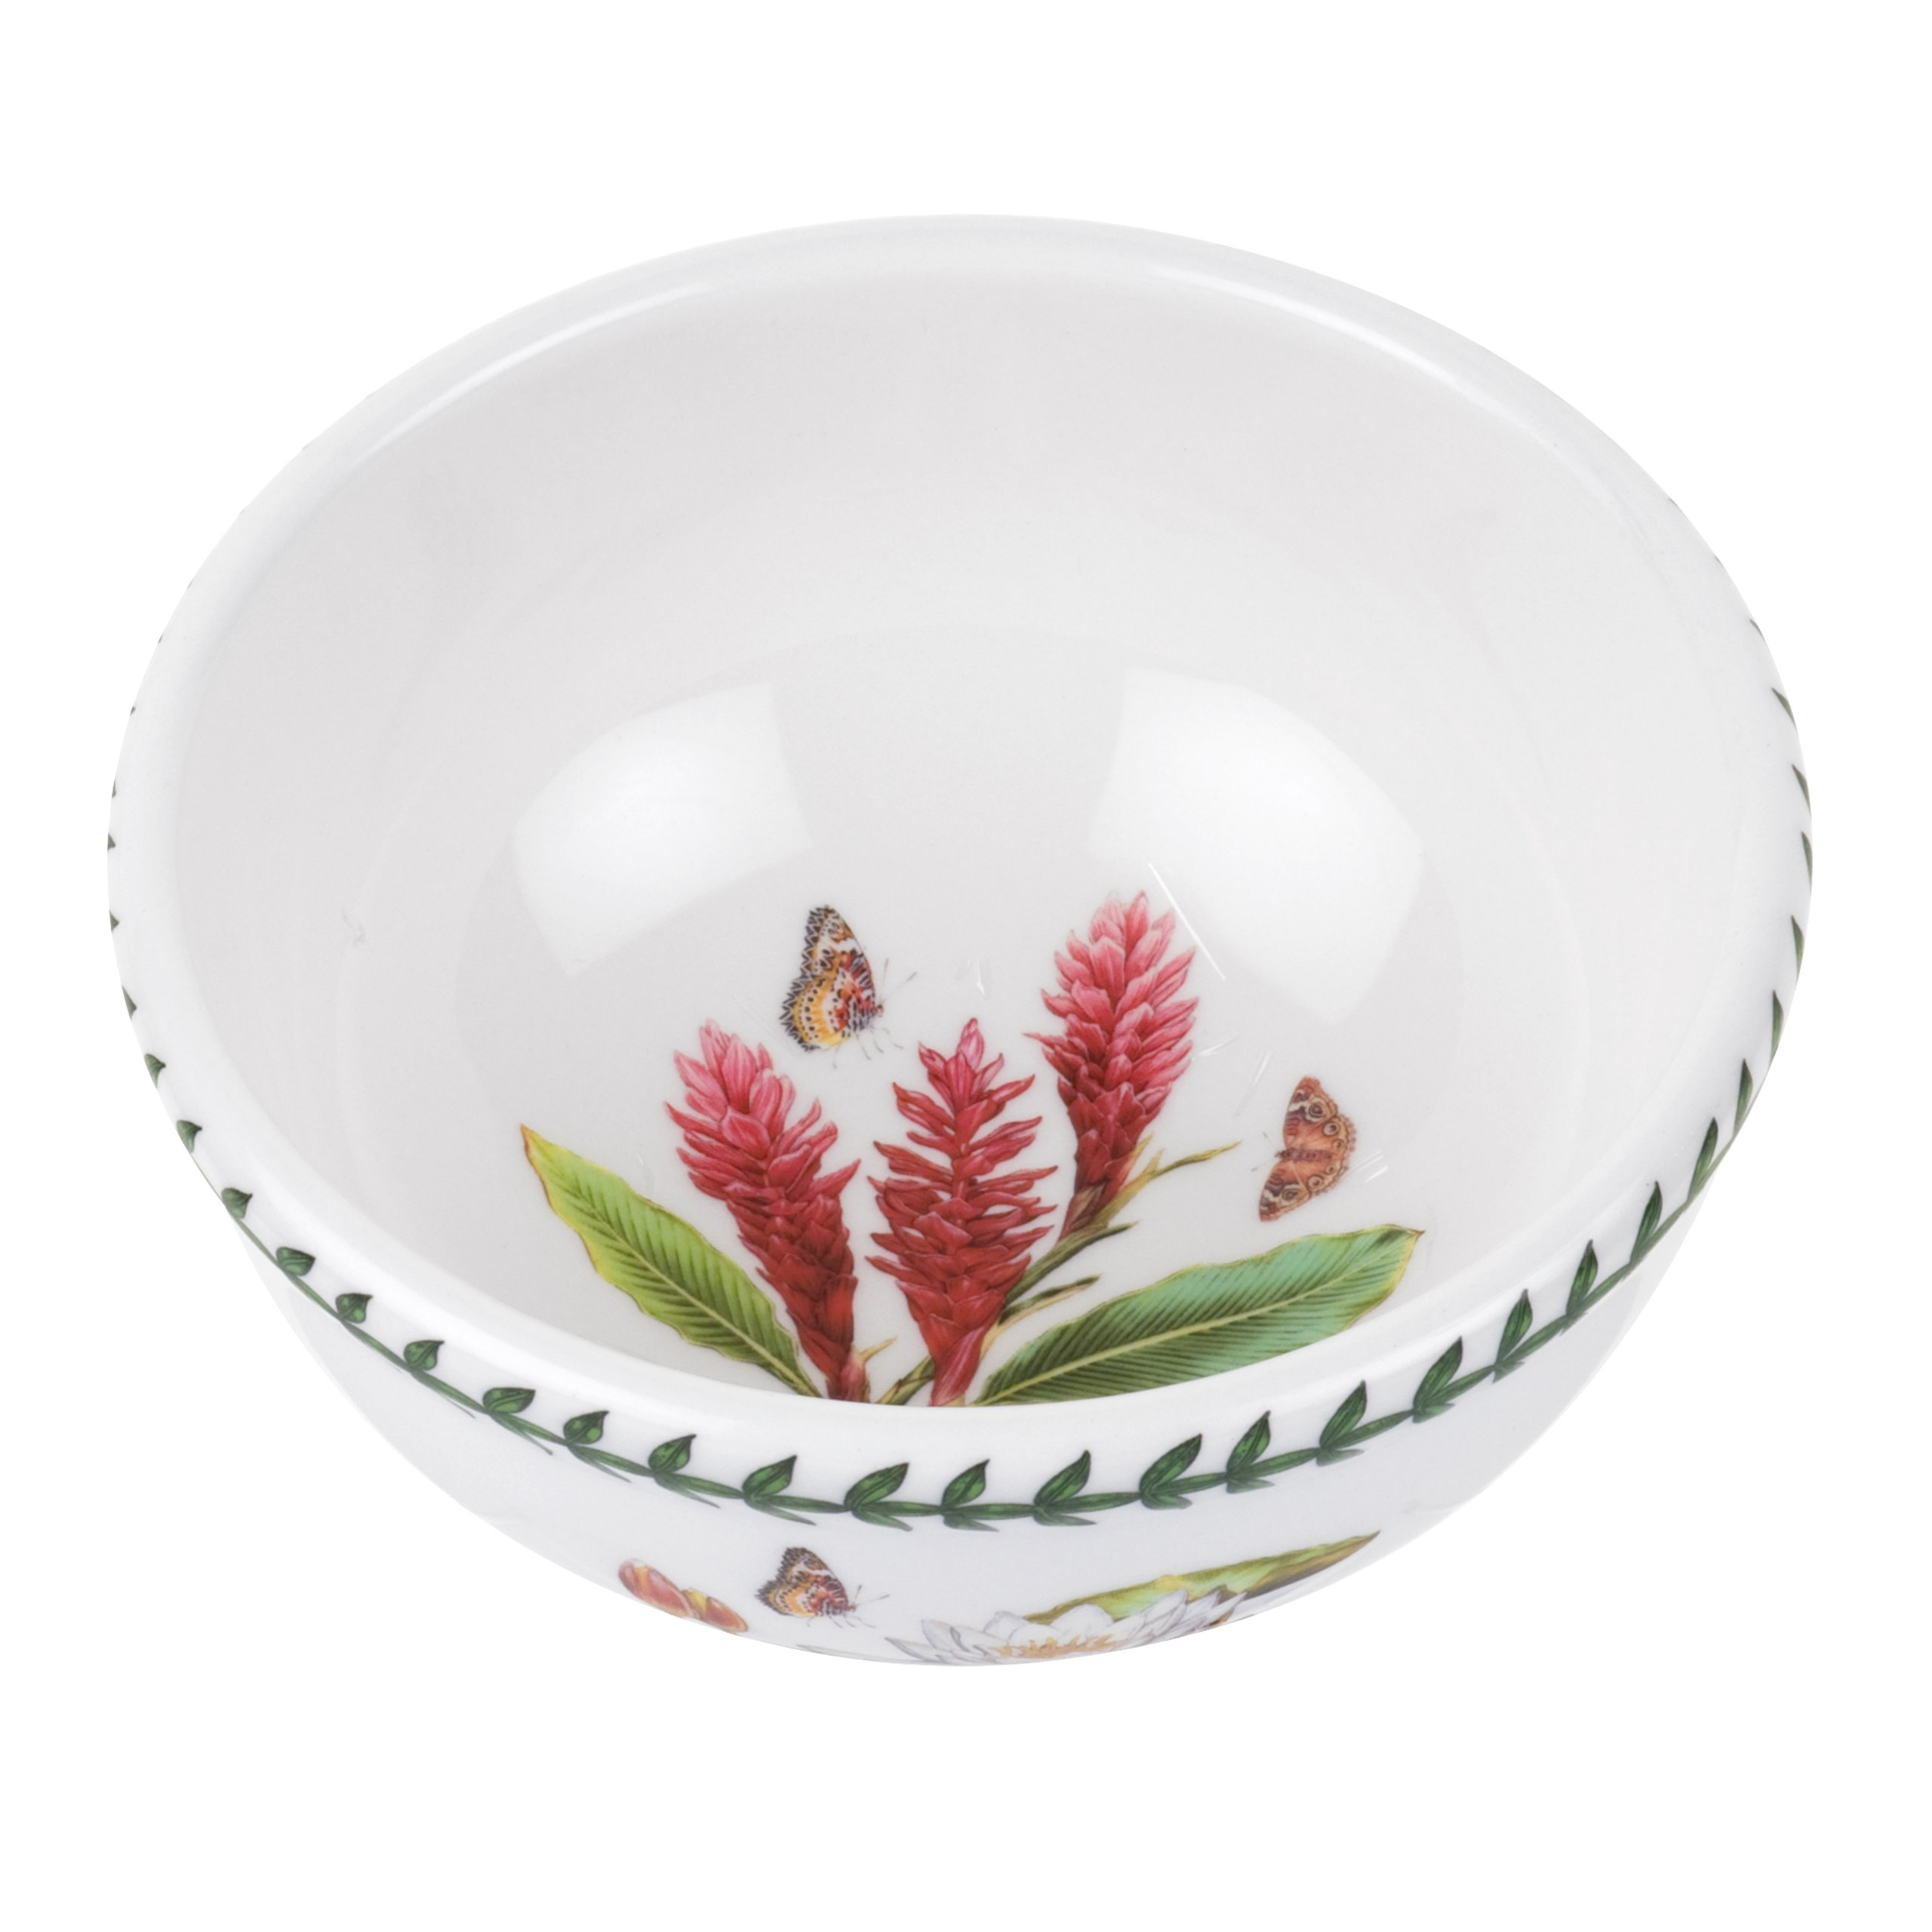 Portmeirion Exotic Botanic Garden Individual Fruit Salad Bowl with Red Ginger, Set of 6 by Portmeirion